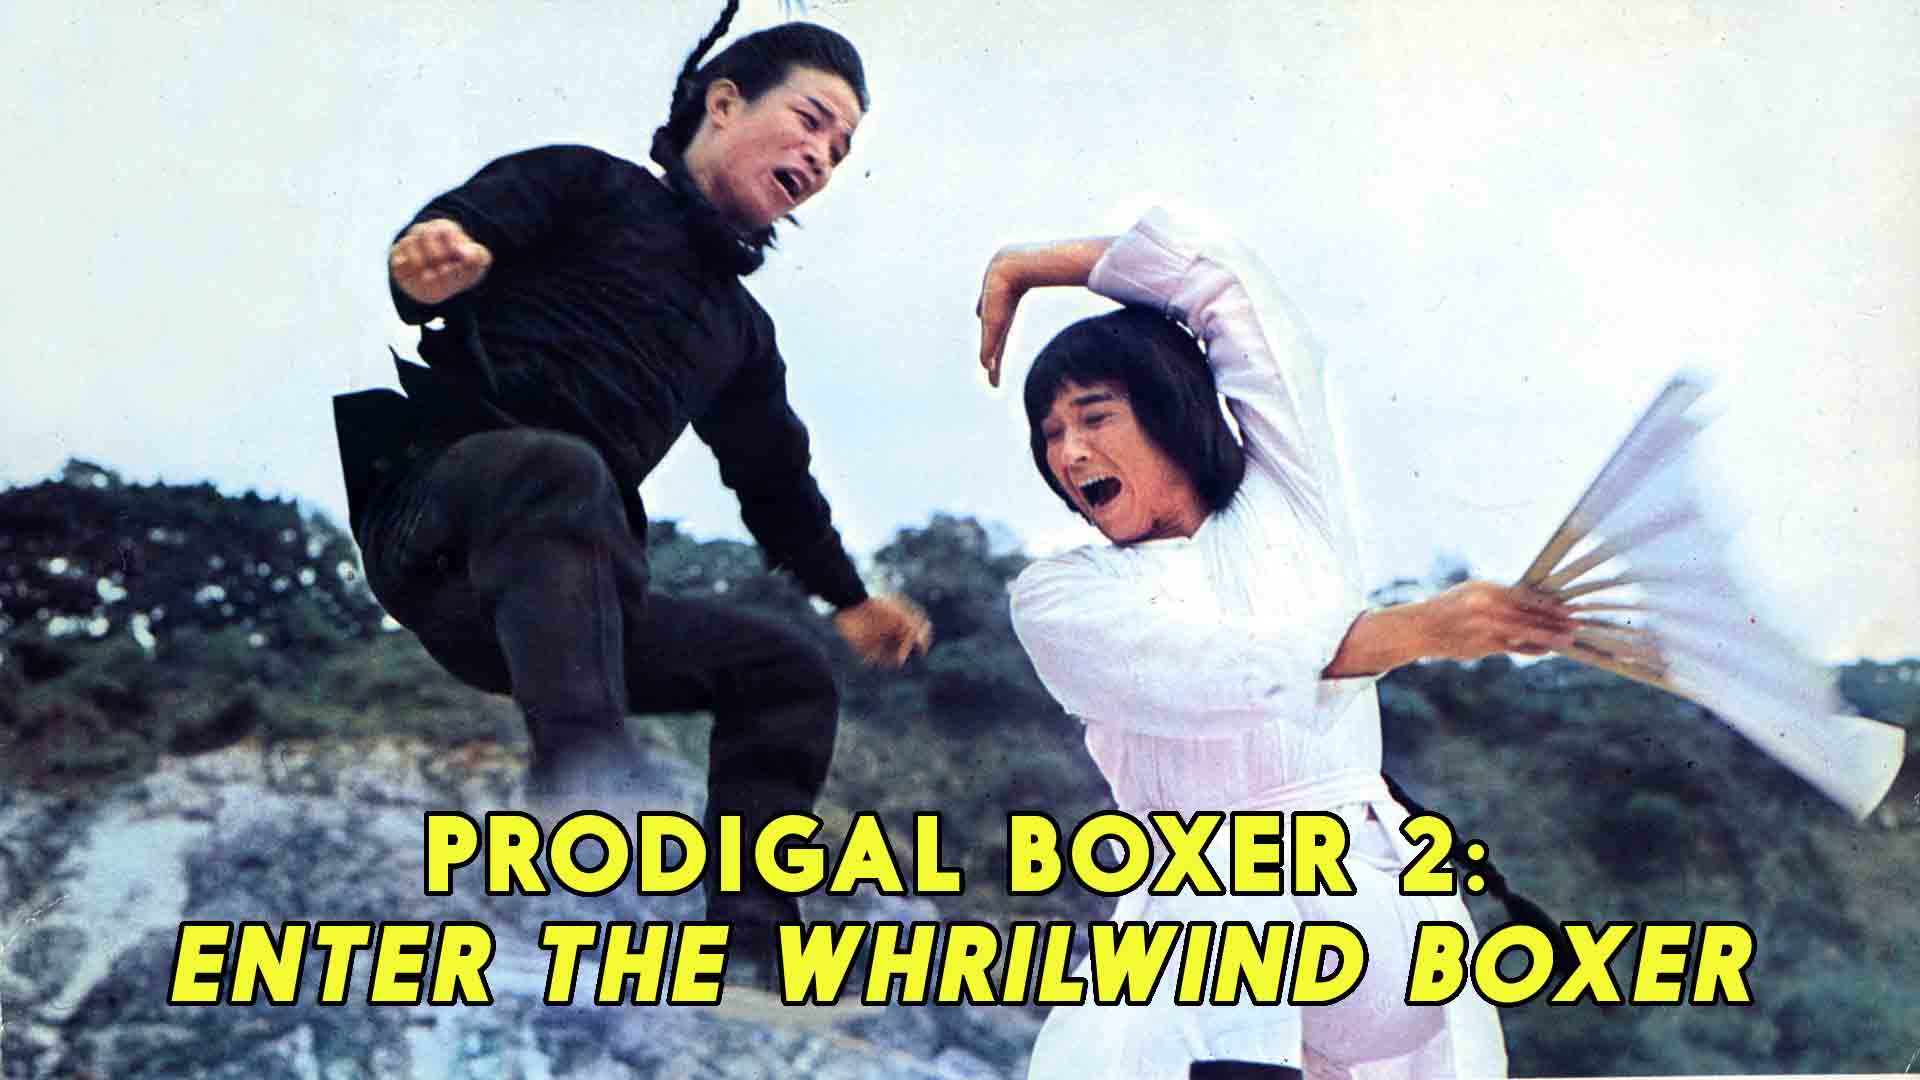 Prodigal Boxer 2: Enter The Whirlwind Boxer